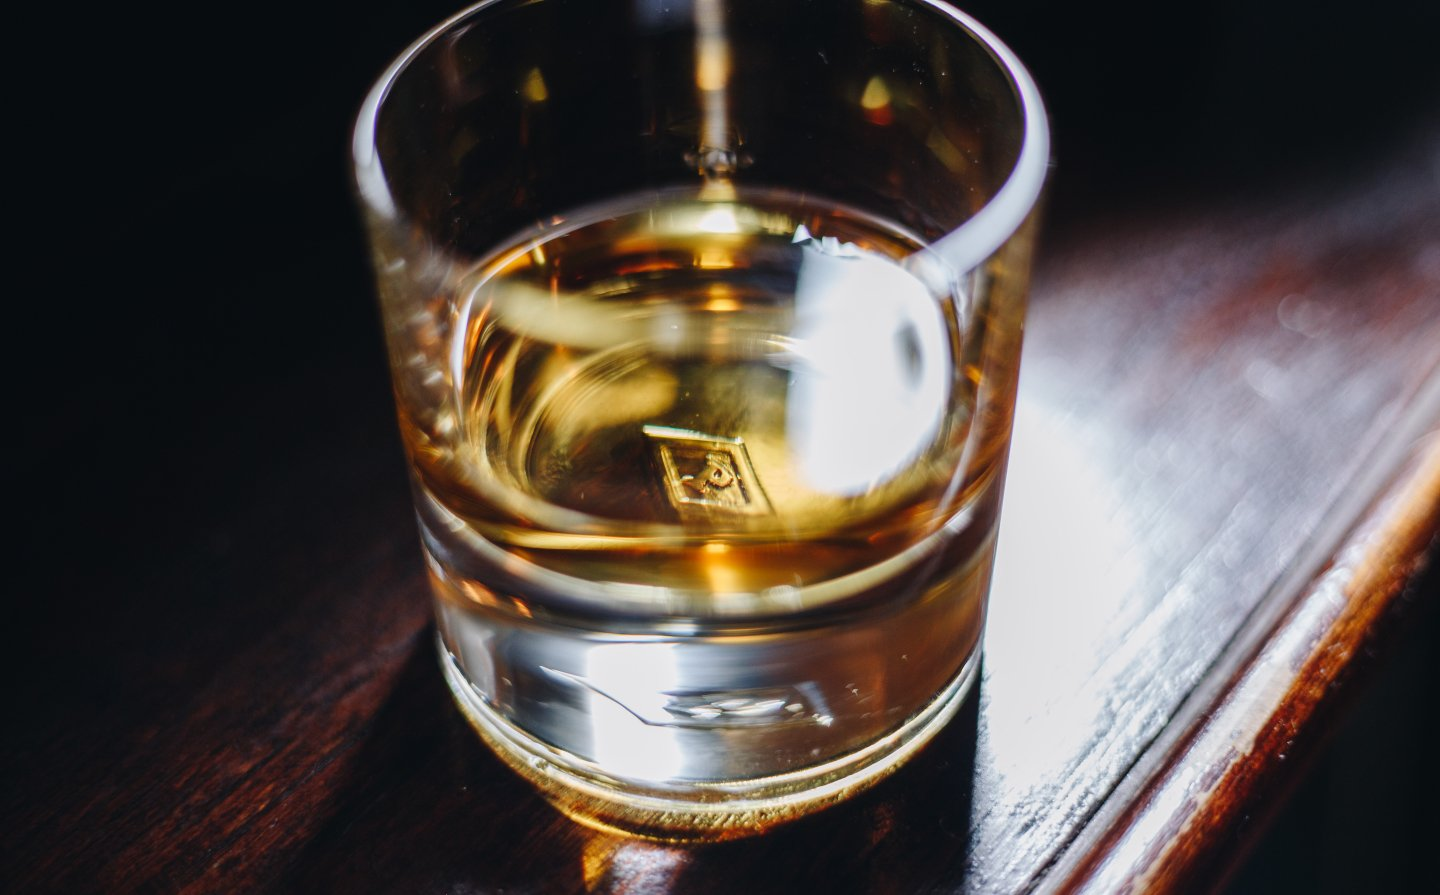 Image result for glass of powers gold label in pub